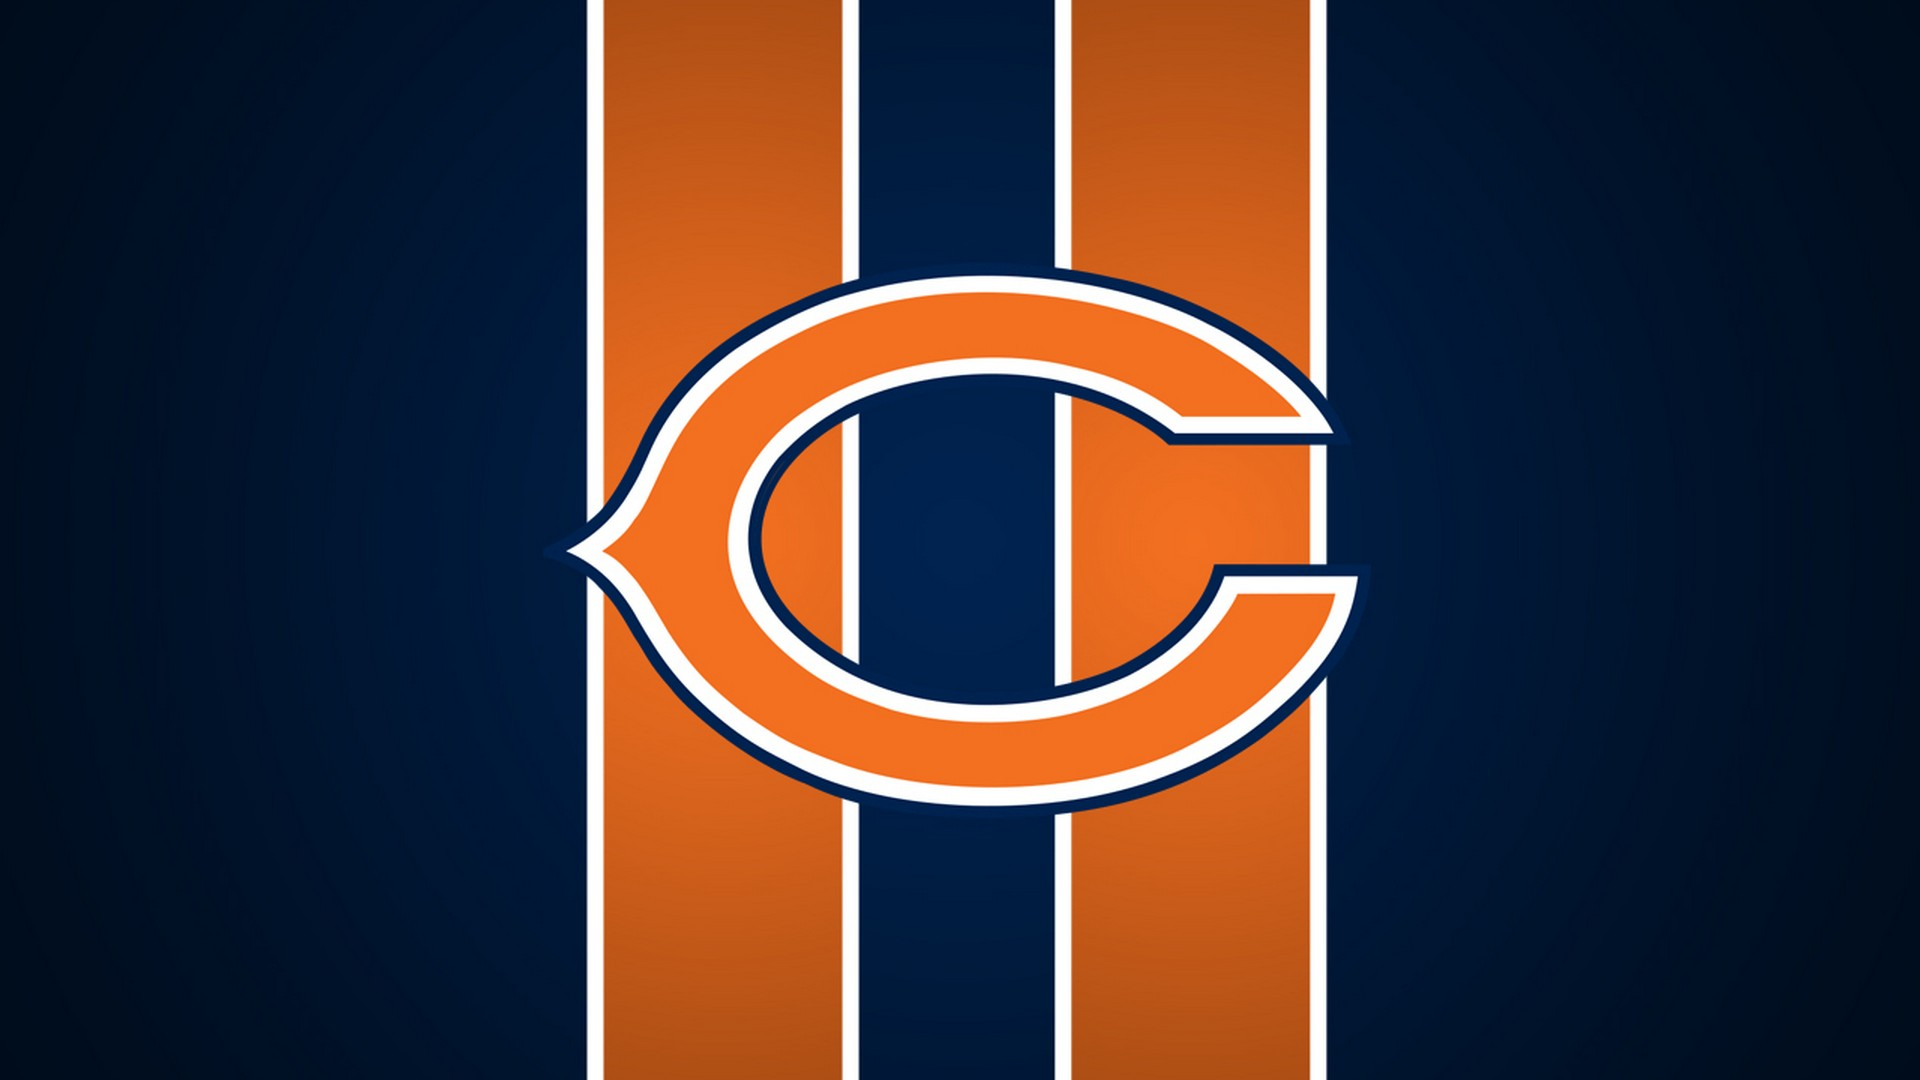 Chicago Bears For Mac   2021 NFL Football Wallpapers 1920x1080